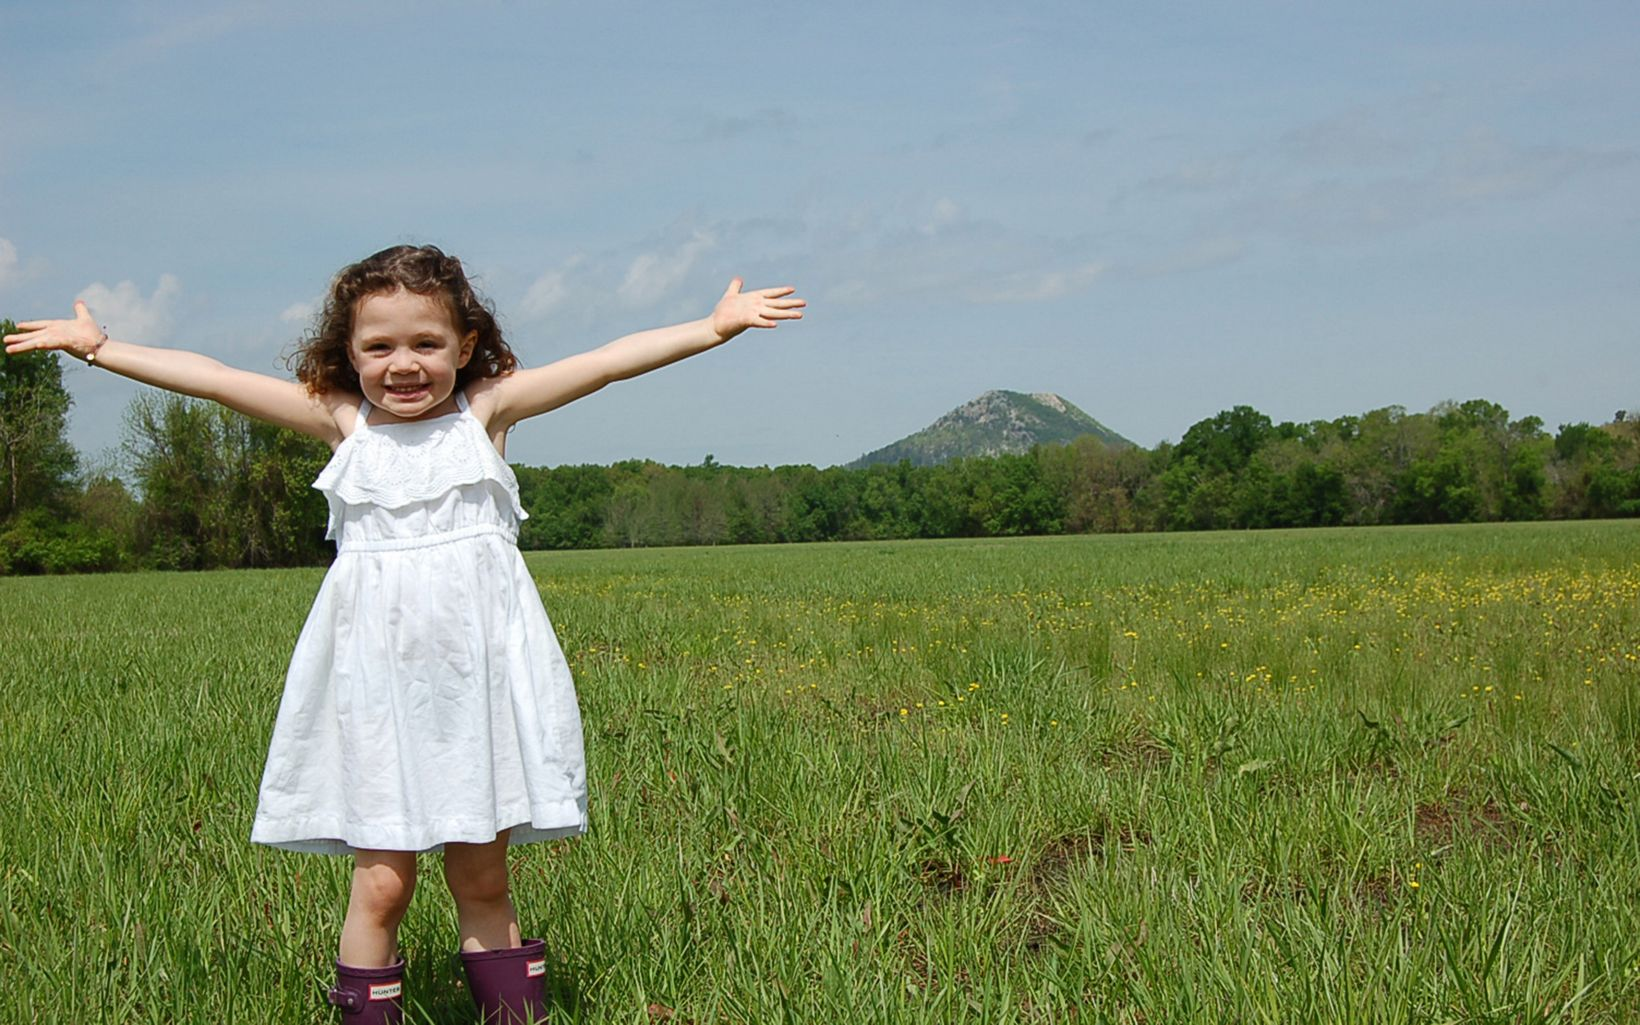 We hope visiting our newest preserve makes you as happy as this little conservationist.